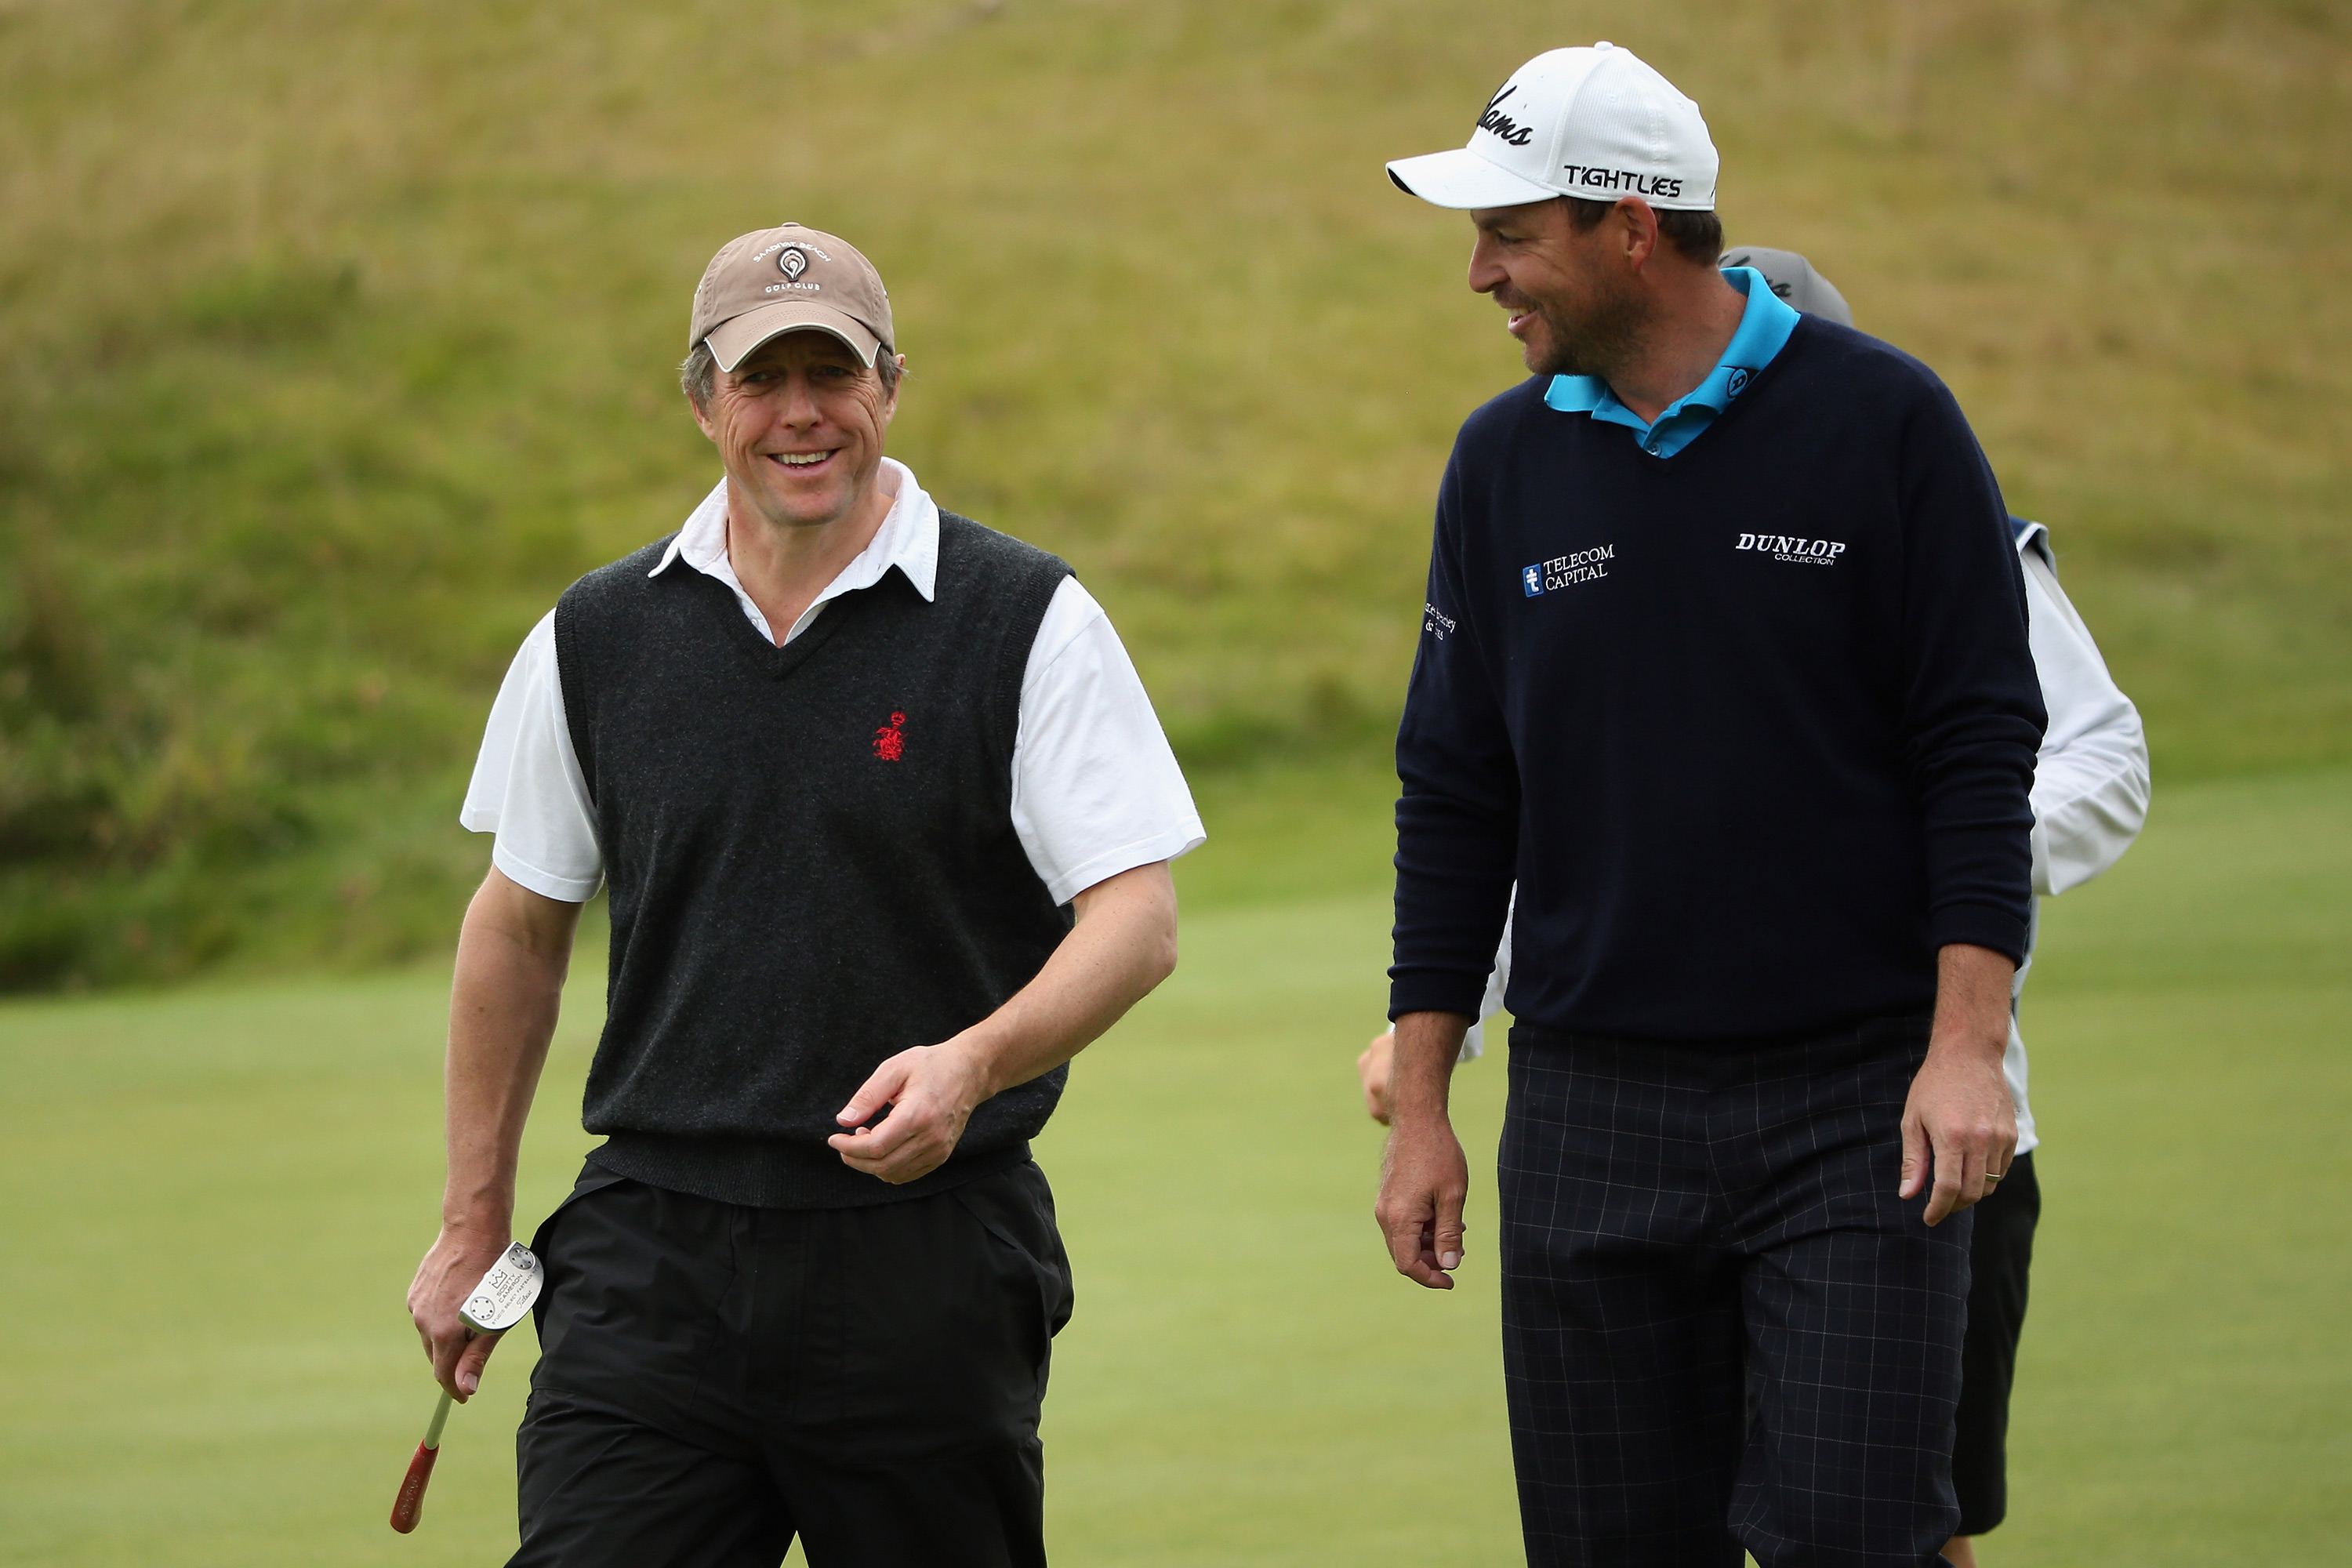 Hollywood actor Hugh Grant shares a joke with Howell at the Dunhill Links (Photo: Getty Images)